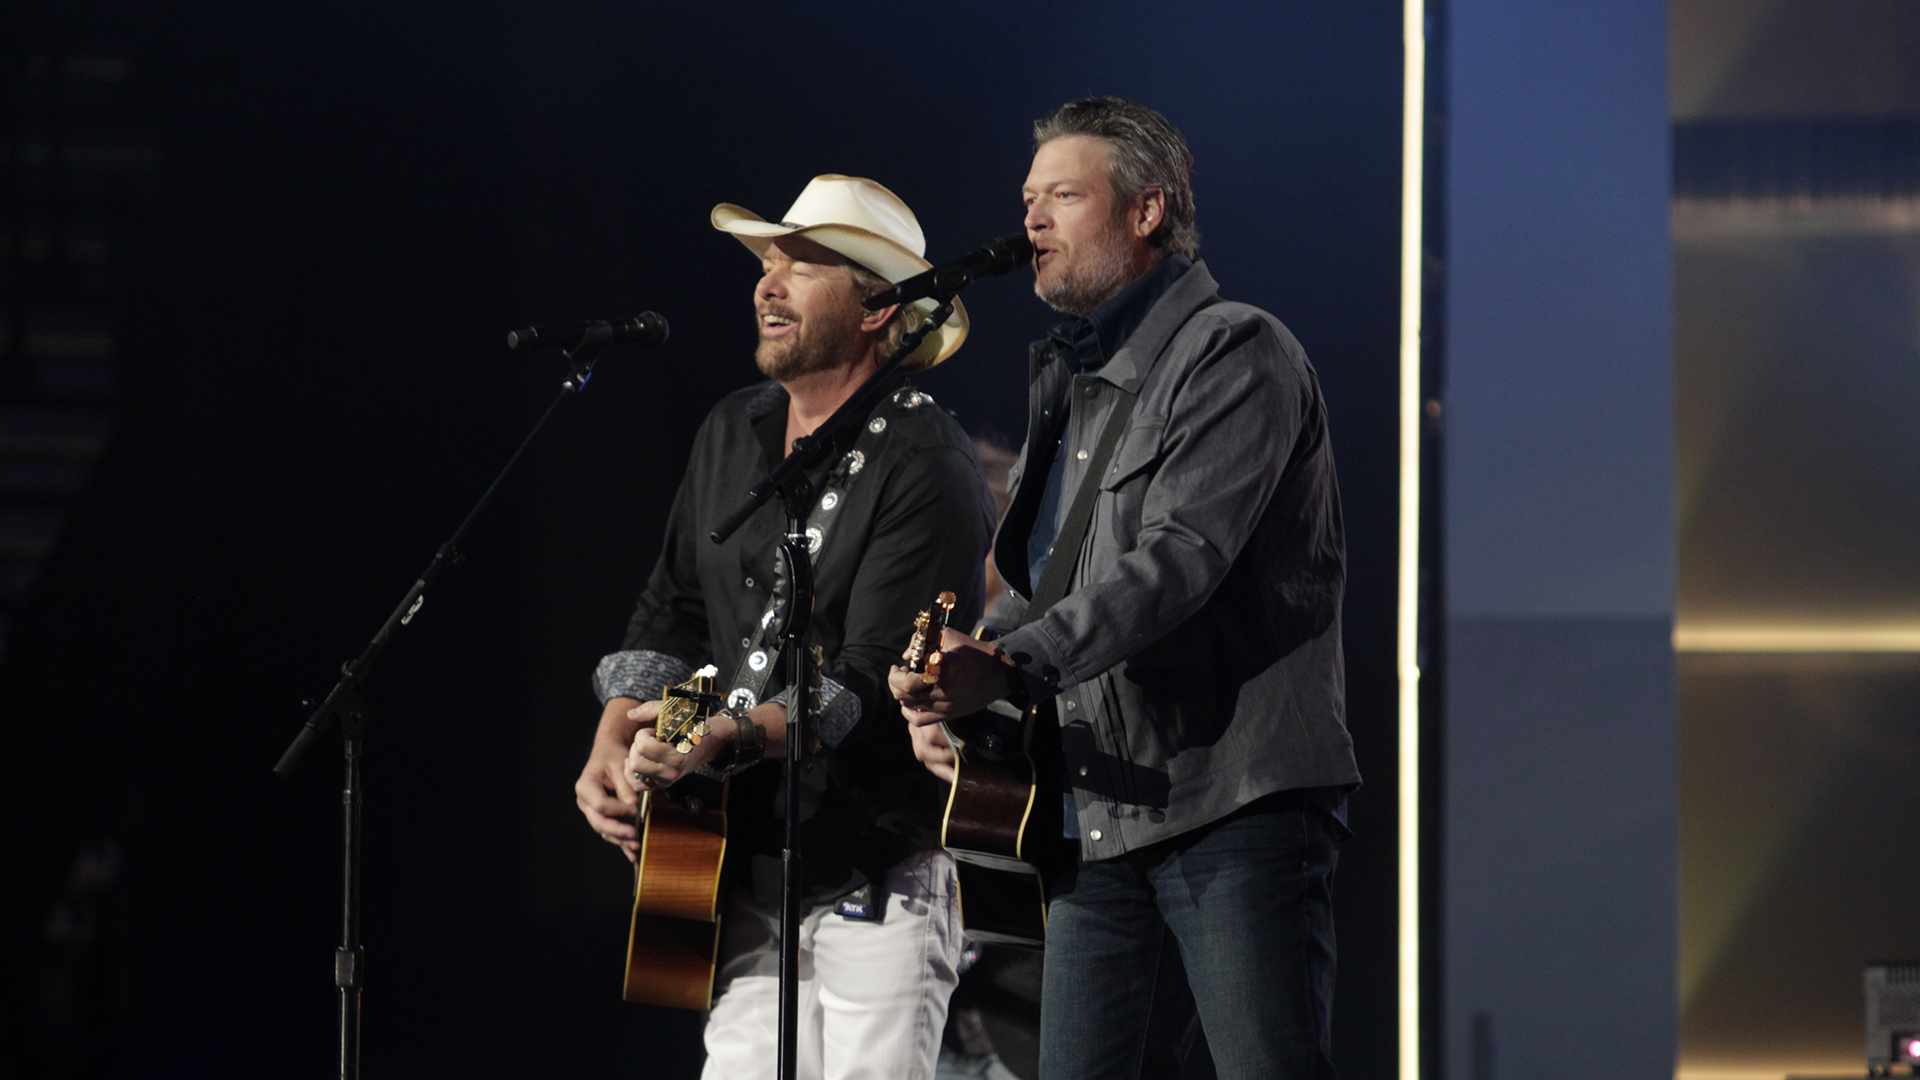 In an ACM flashback, Toby Keith and Blake Shelton perform Keith's 1993 hit